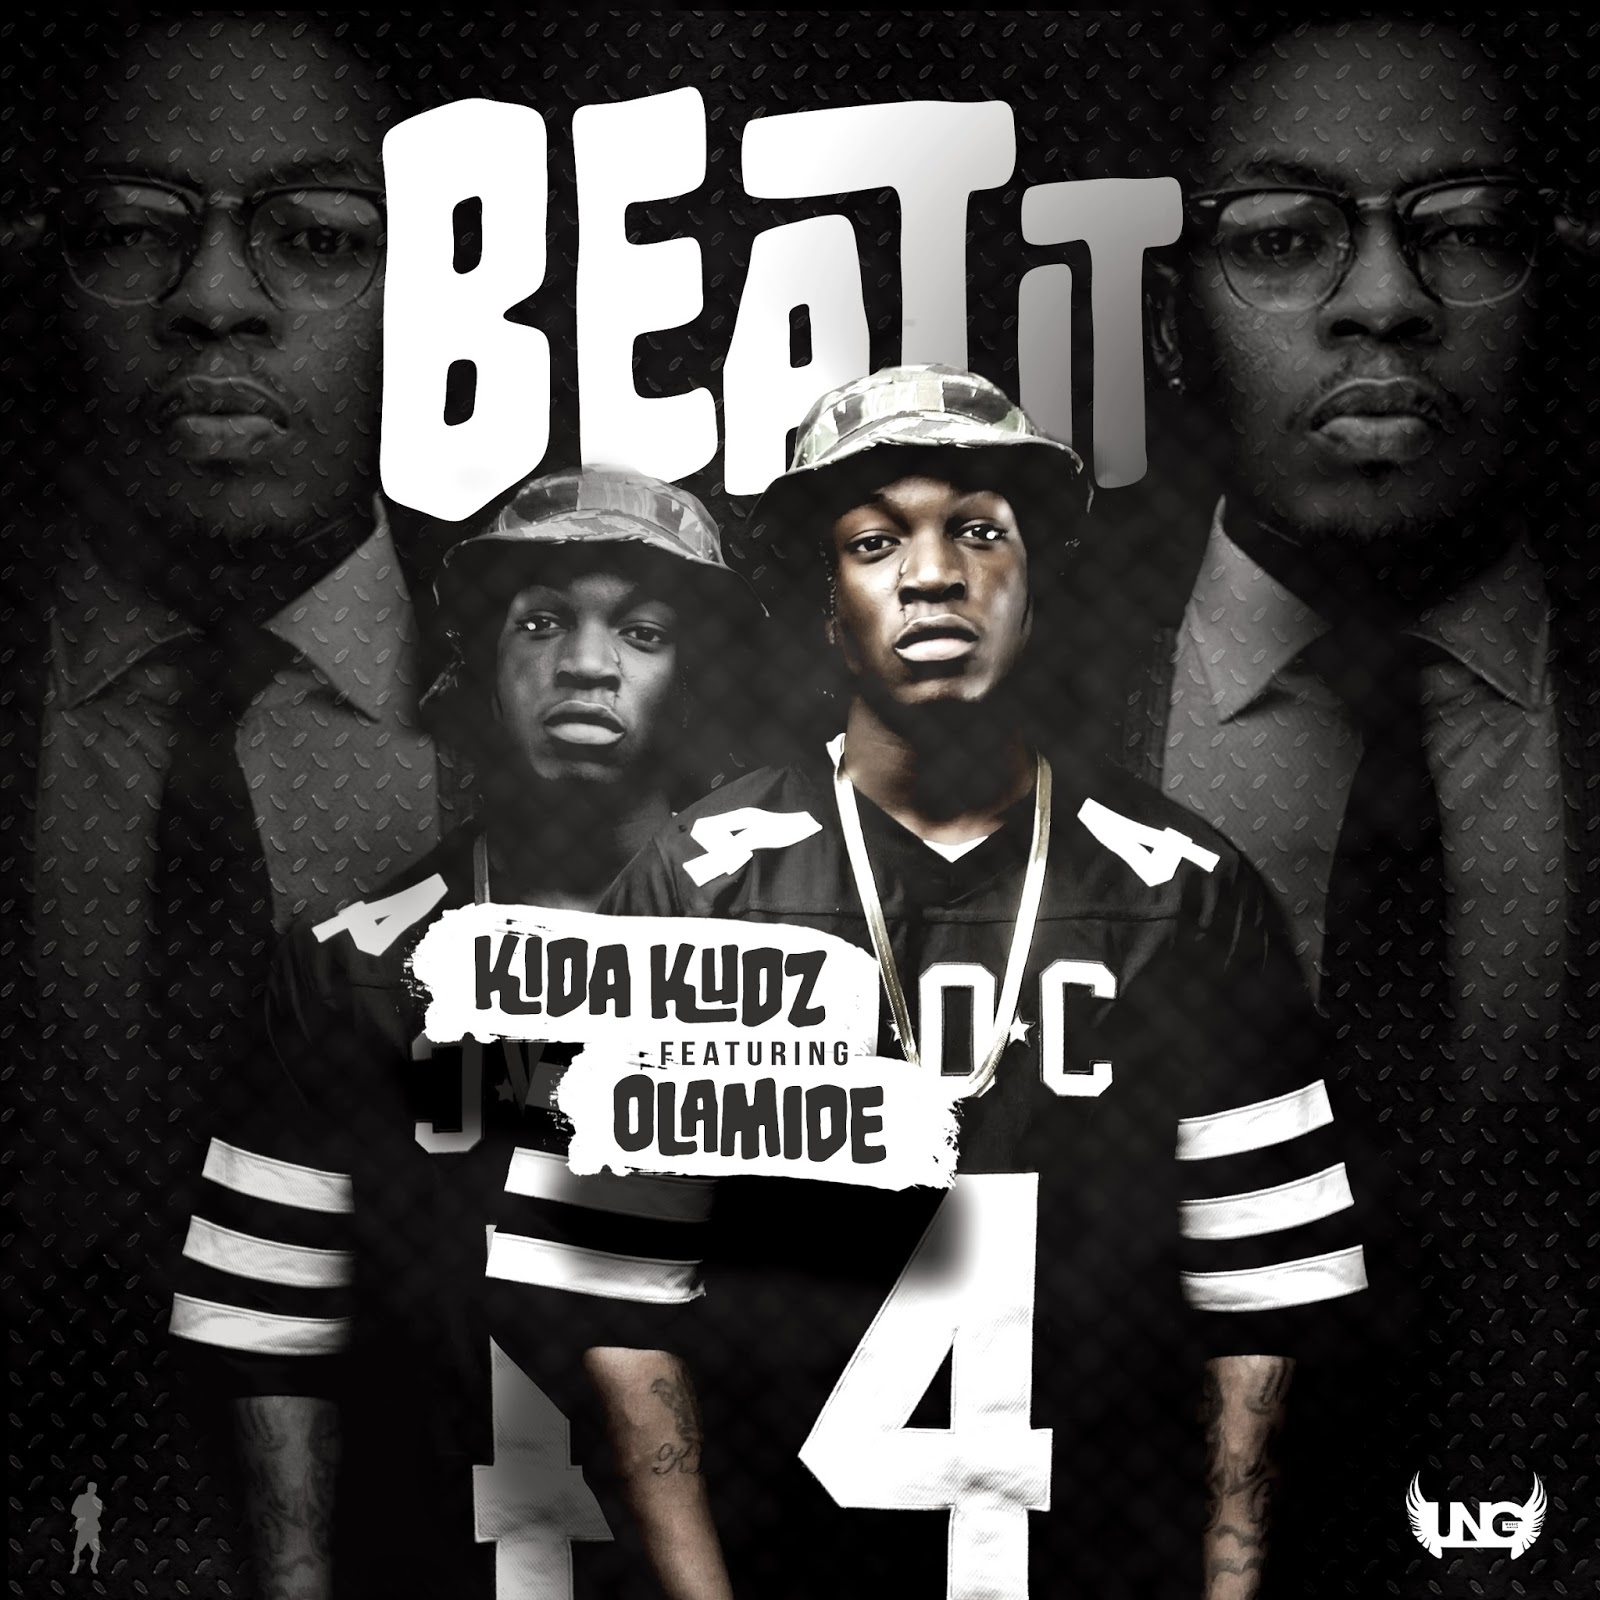 Kida Kudz - Beat It Ft. Olamide[@KidaKinkin , @Olamide_Ybnl]